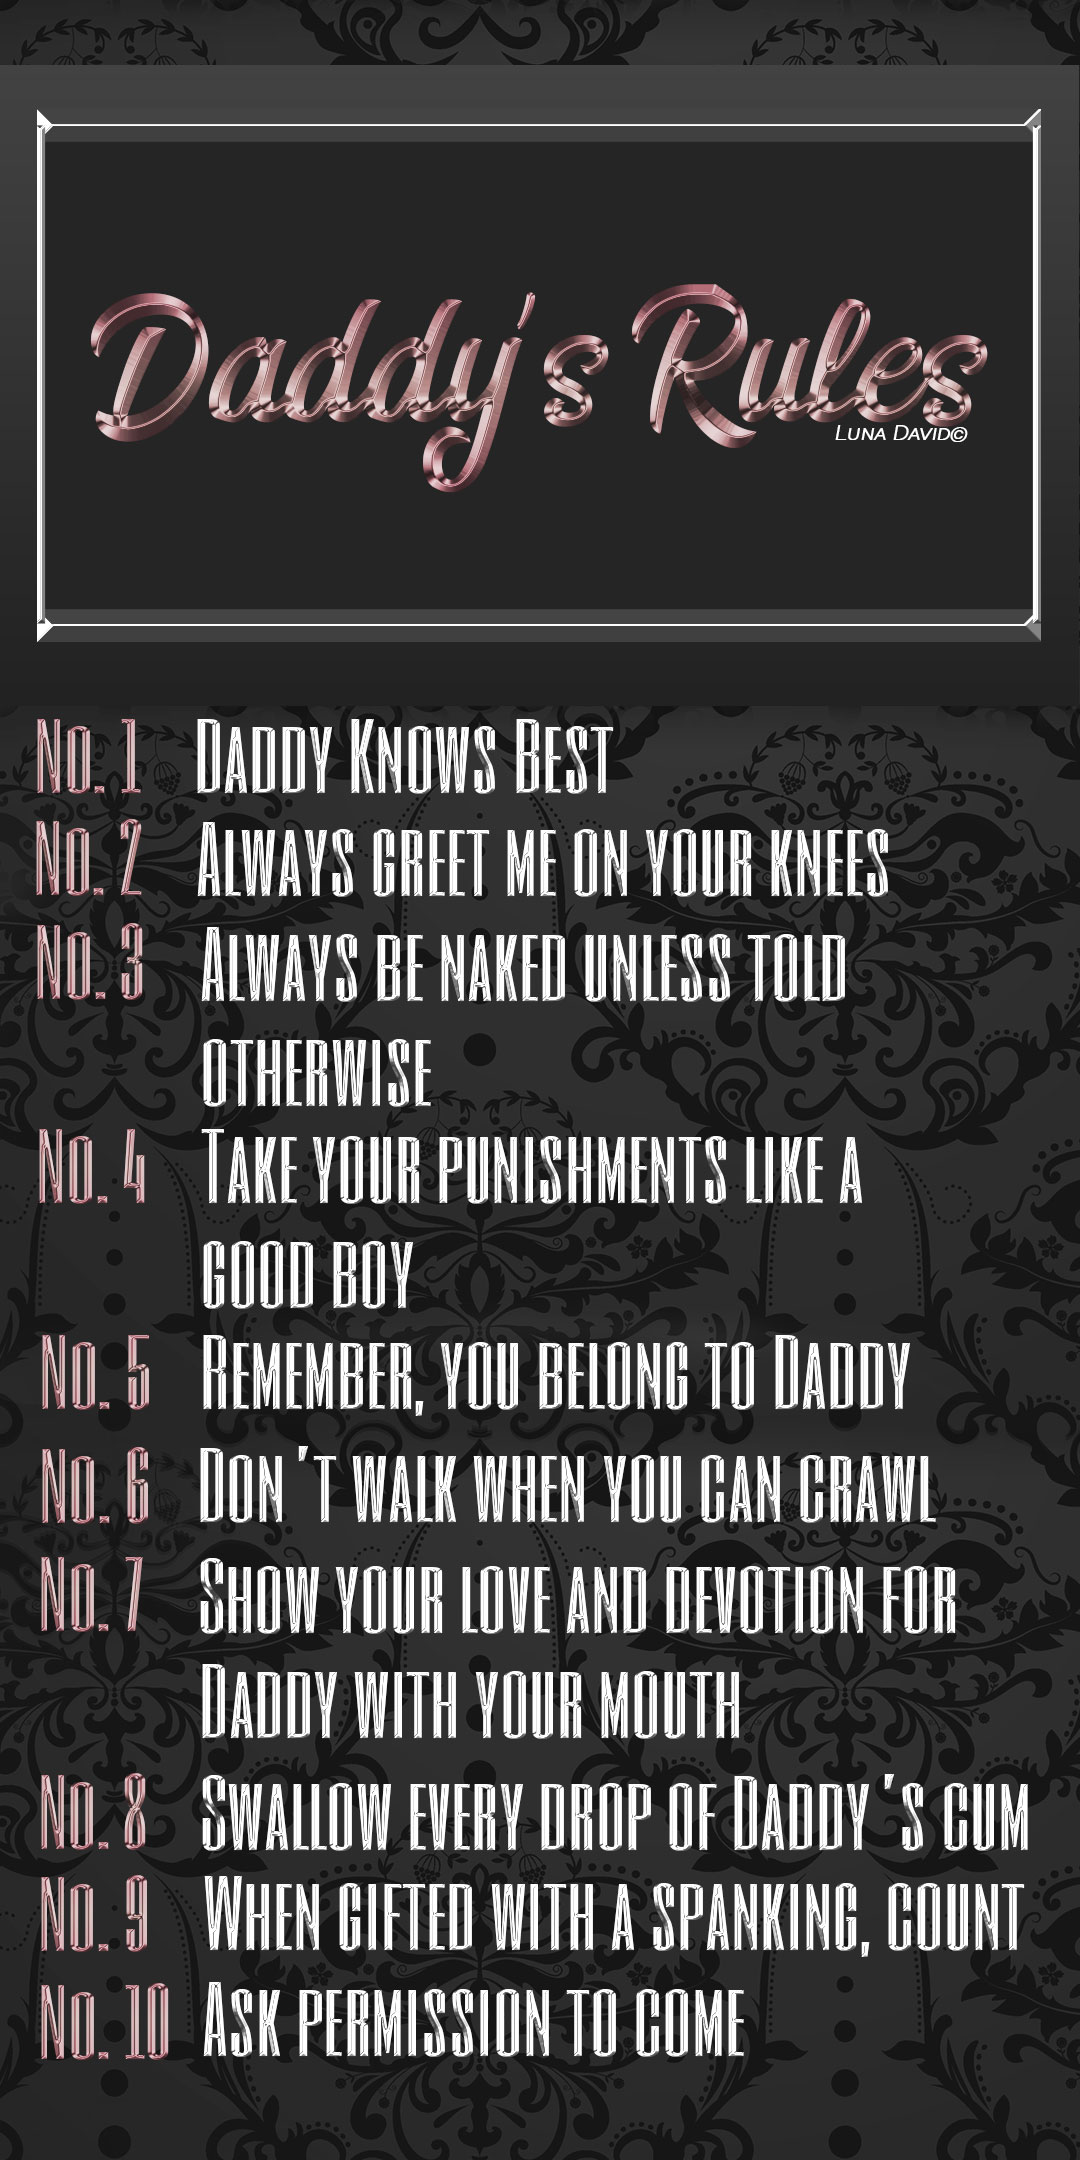 Daddy's-Rules-All-10 (003)